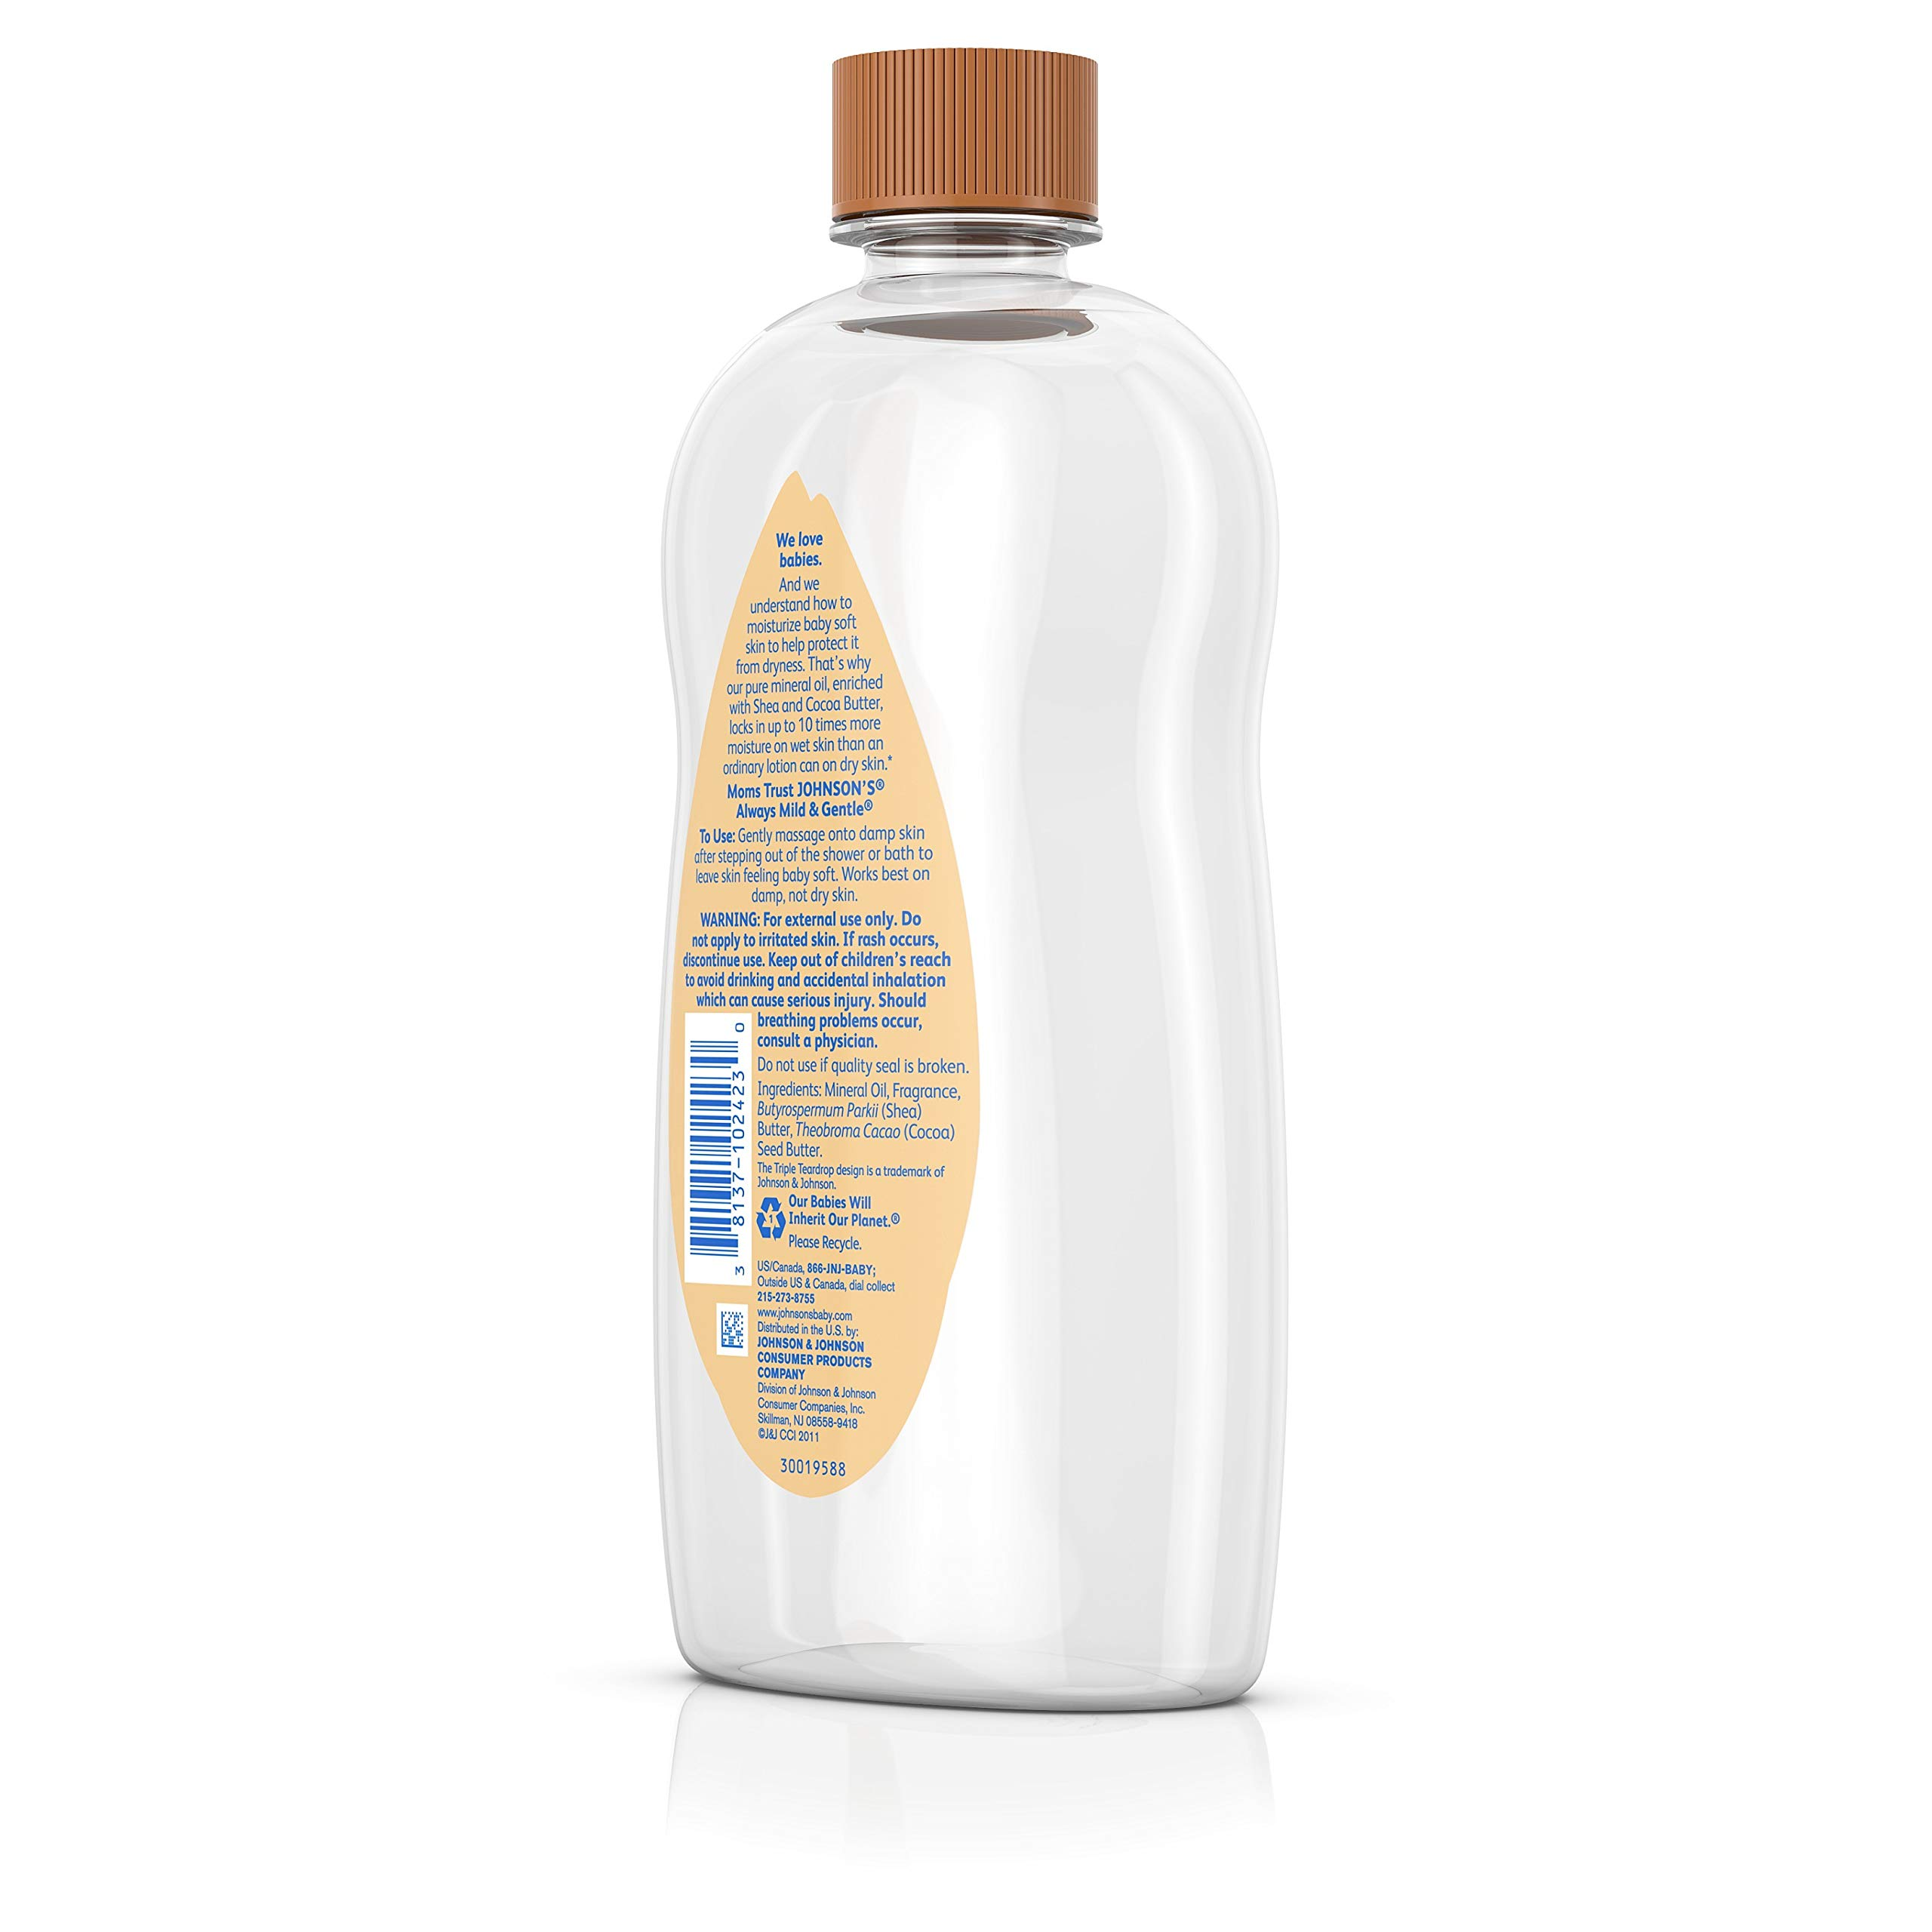 Johnson's Baby Oil With Shea & Cocoa Butter, 20 Fl. Oz by Johnson's Baby (Image #5)